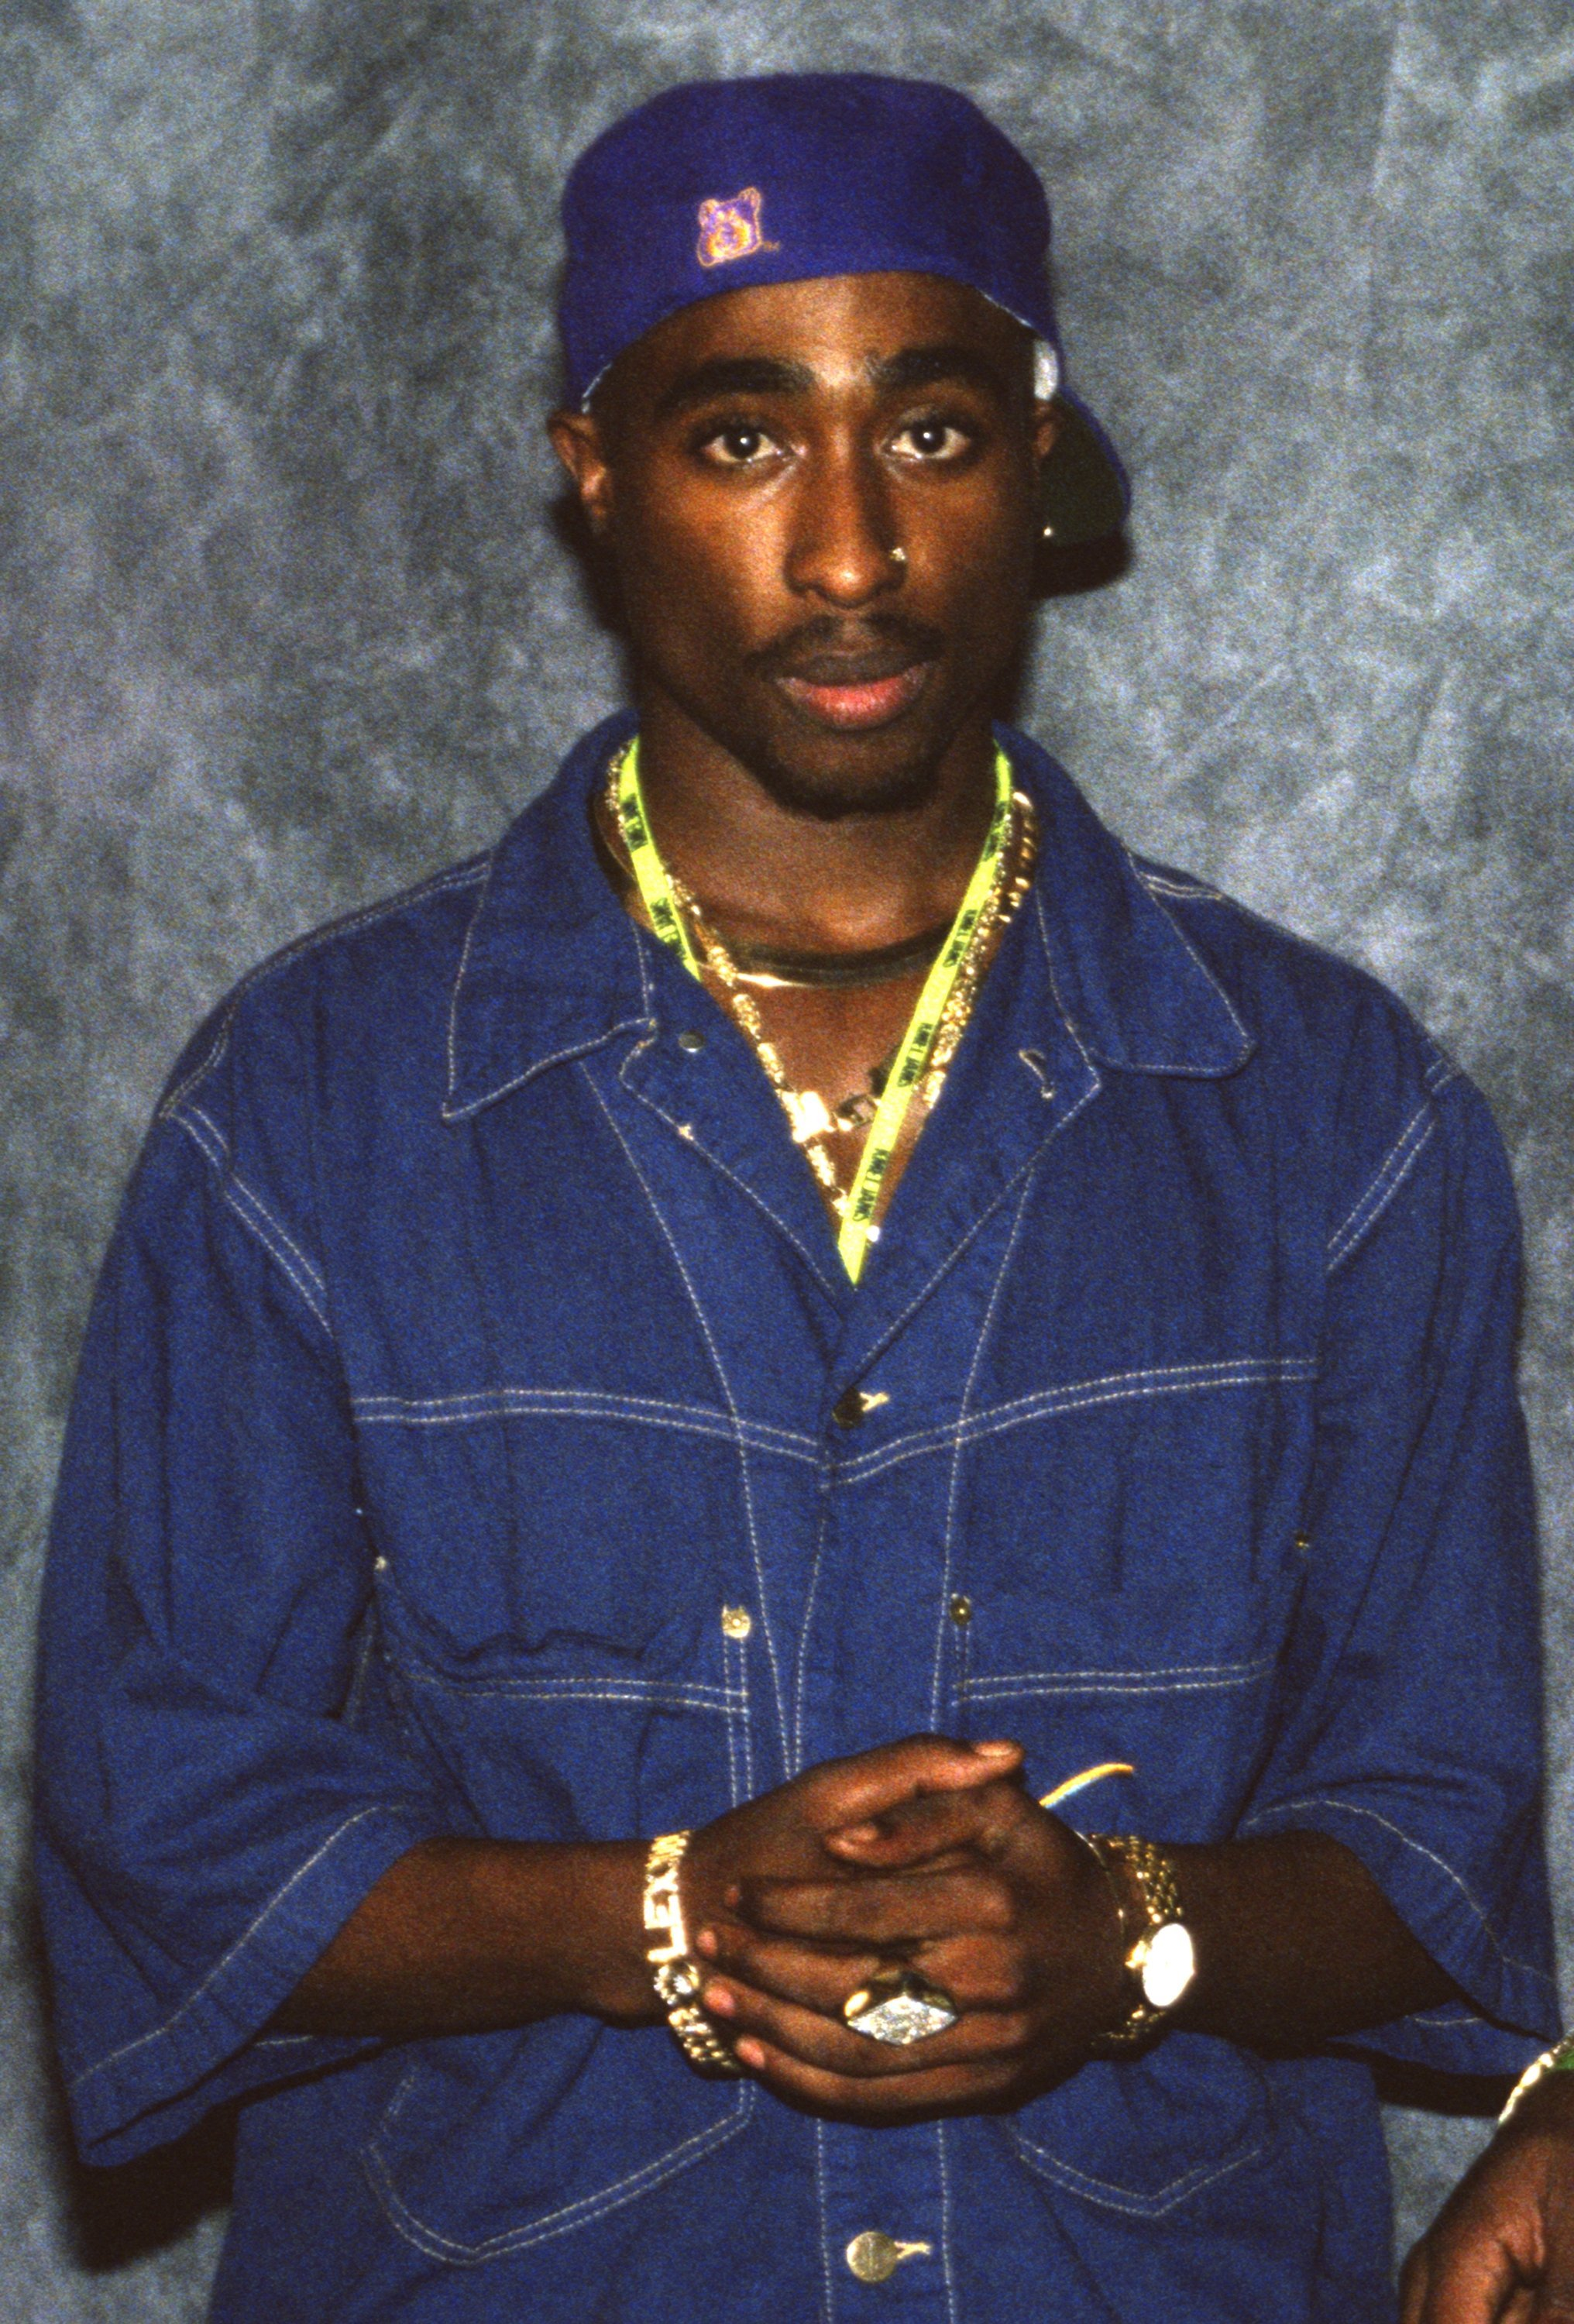 Young Tupac Shakur, deceased rapper | Photo: Getty Images